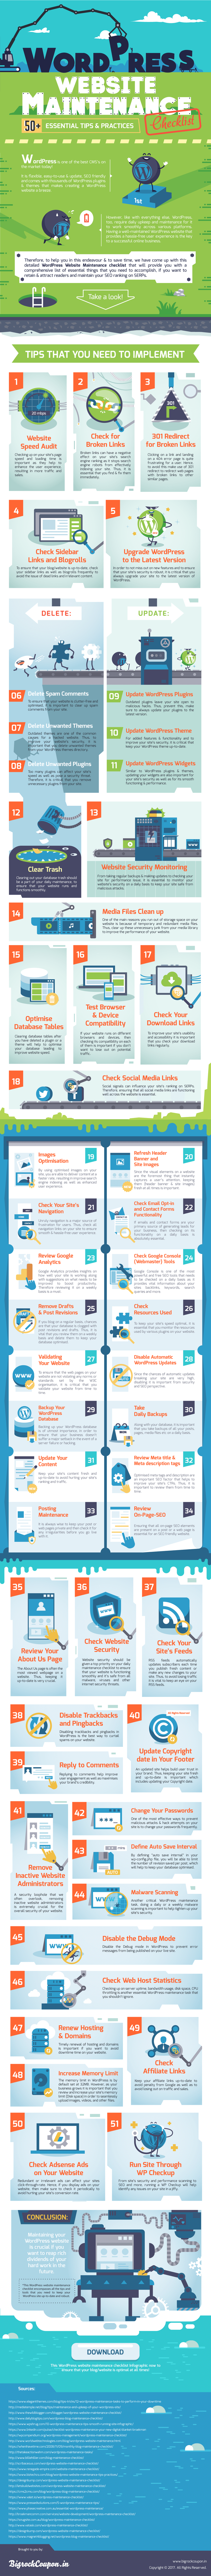 WordPress Website Maintenance Checklist Infographic